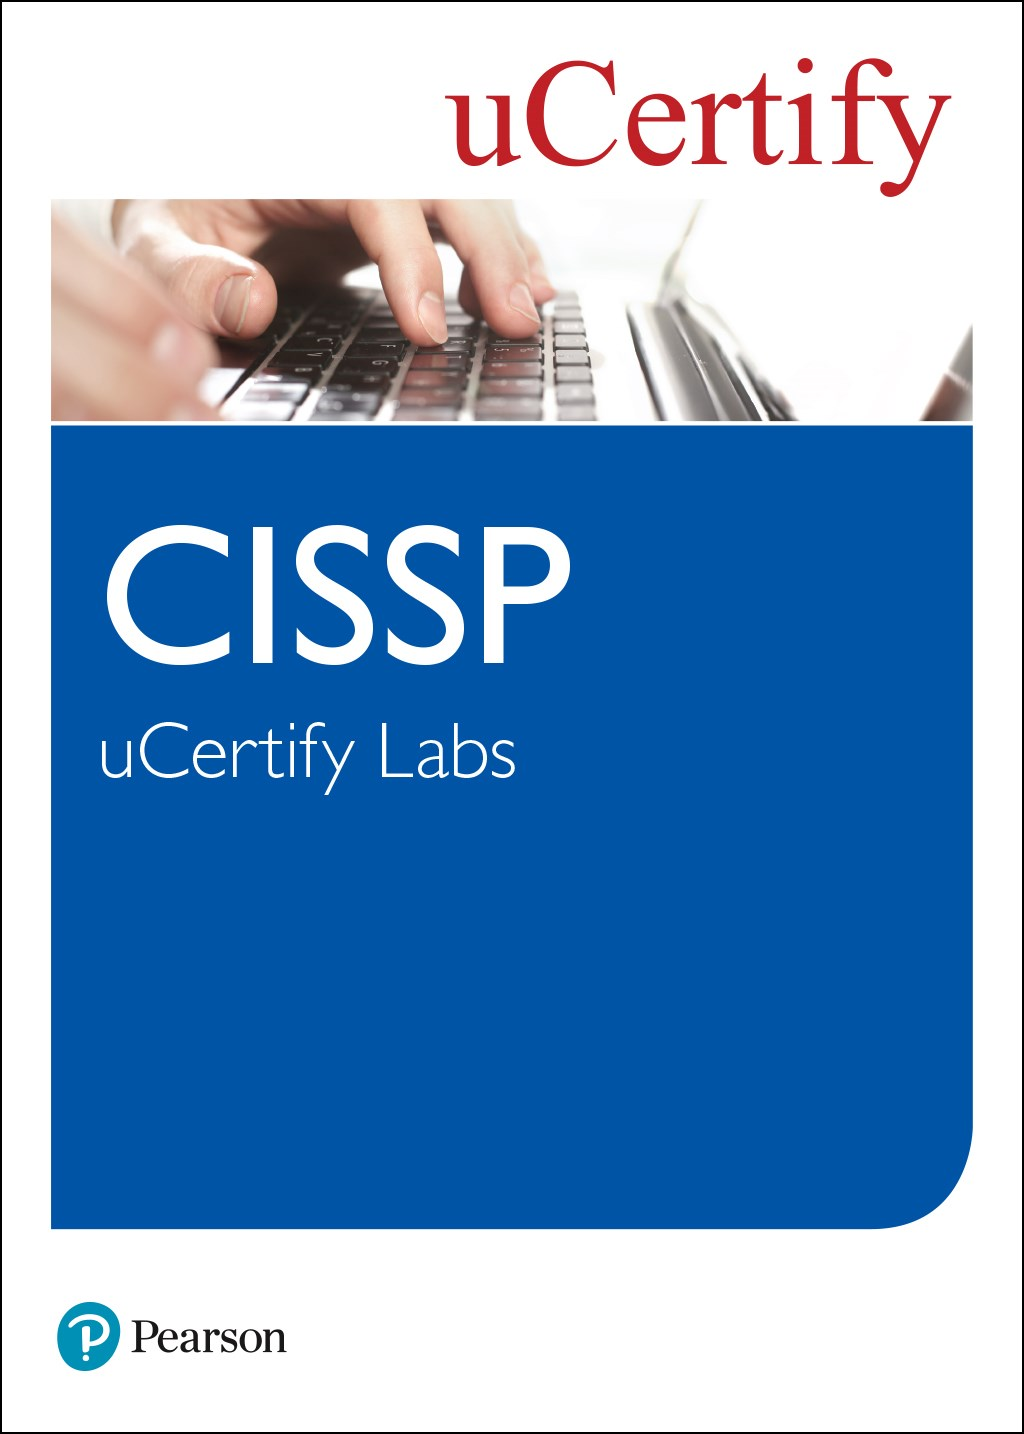 CISSP uCertify Labs Student Access Card, 2nd Edition